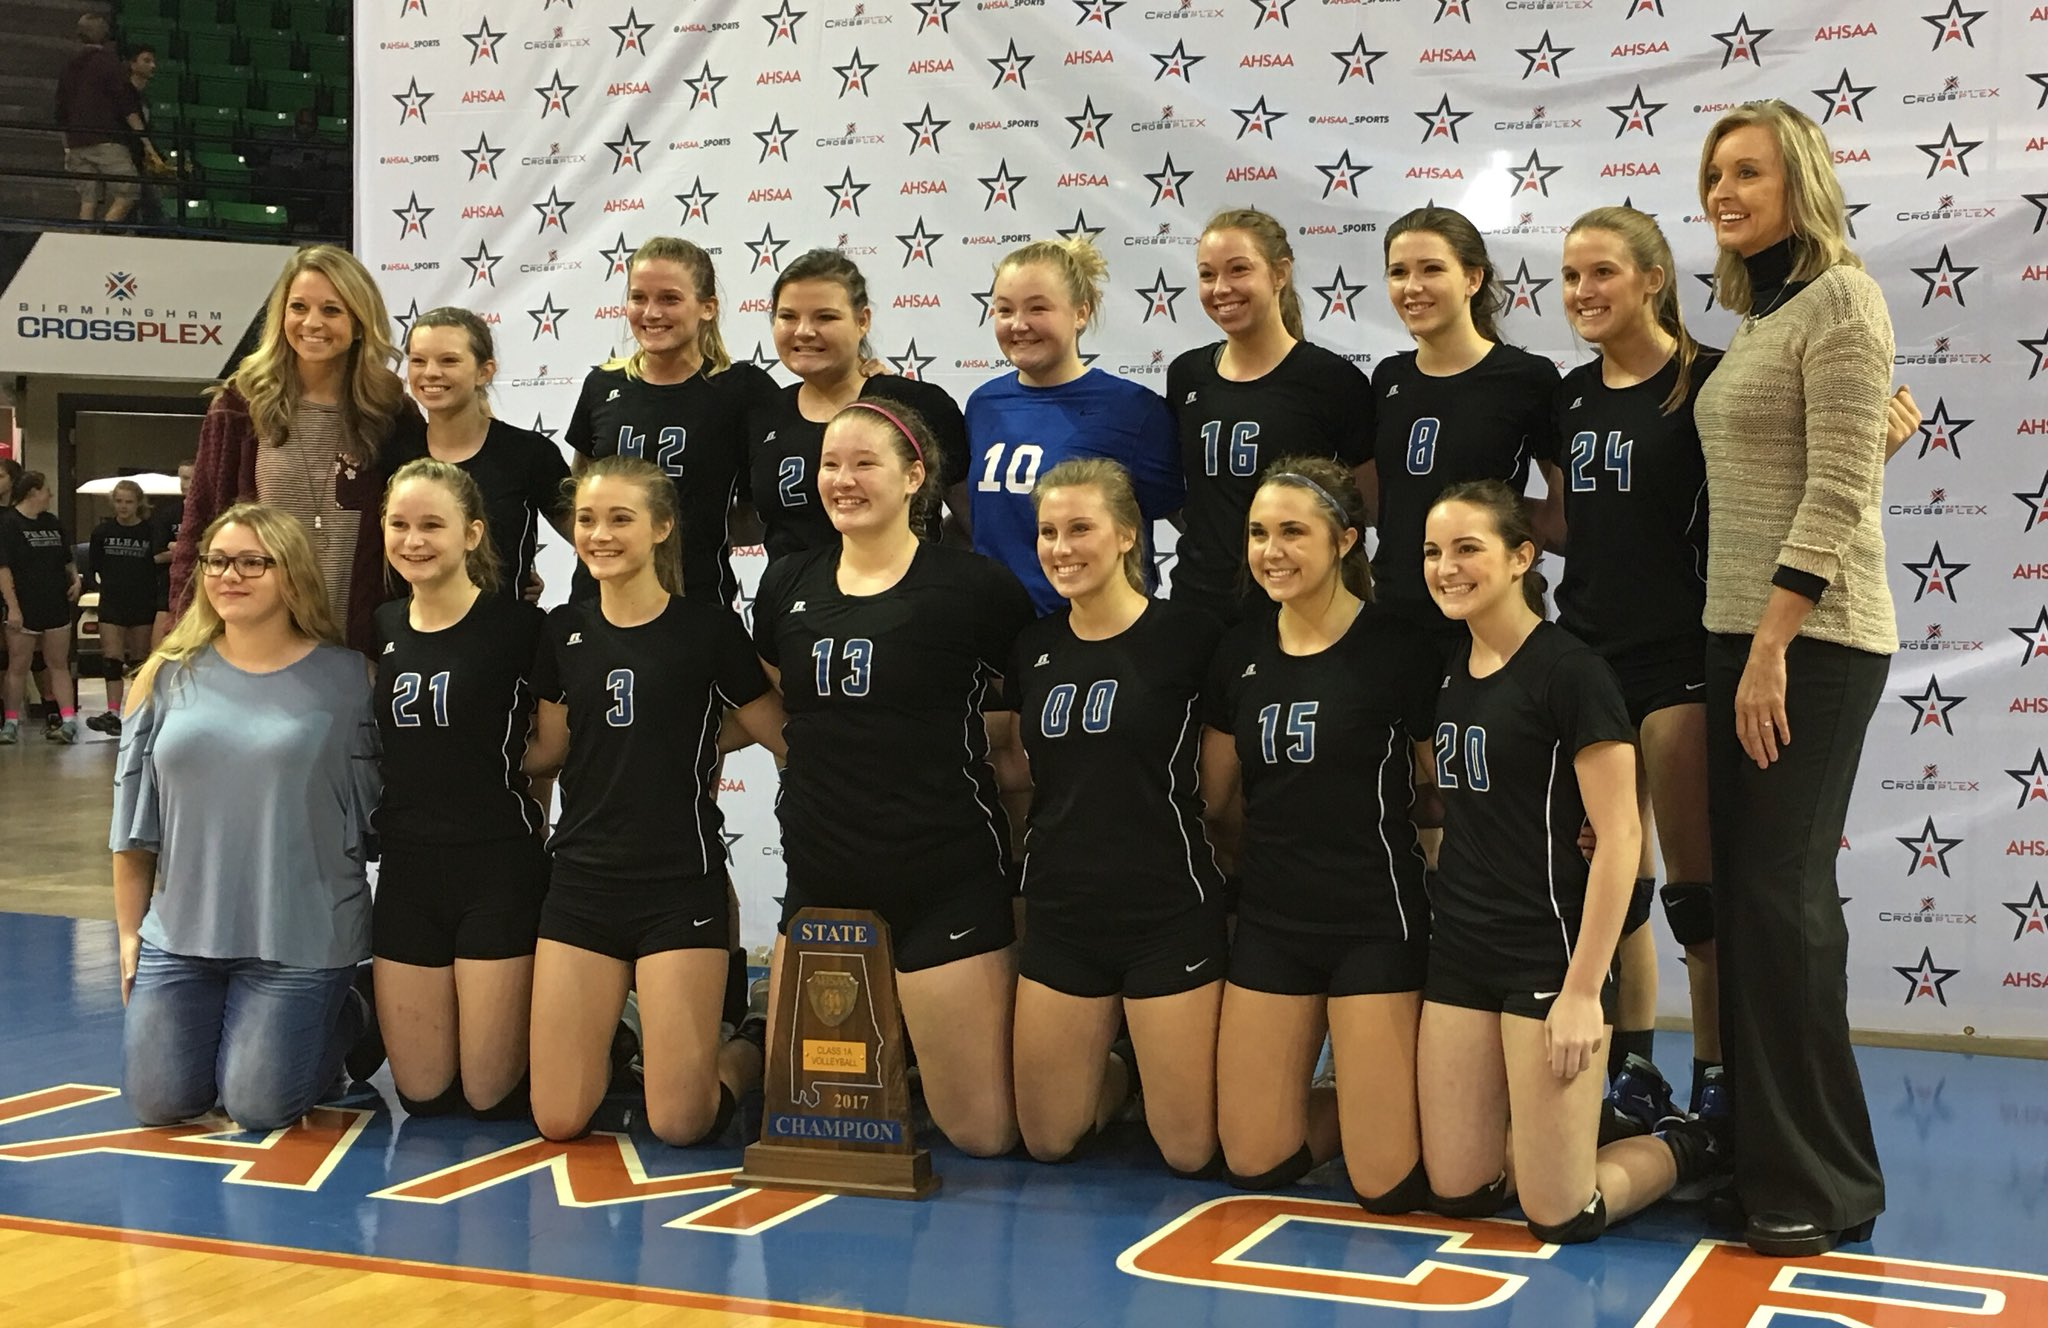 1A Volleyball CHAMPS